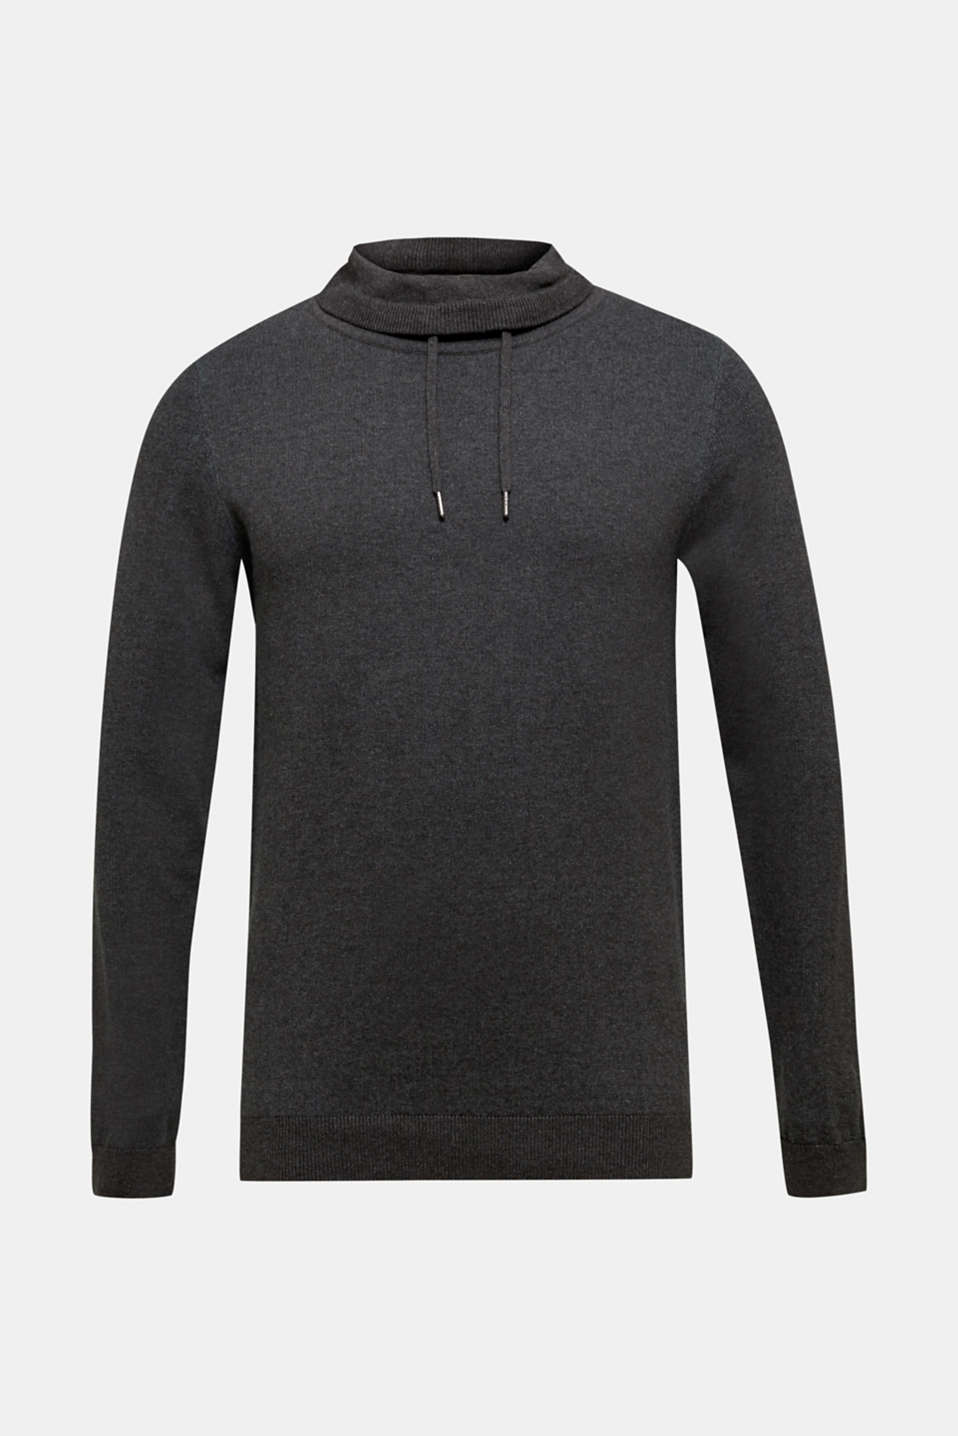 Sweatshirt with a drawstring collar, 100% cotton, ANTHRACITE 5, detail image number 4